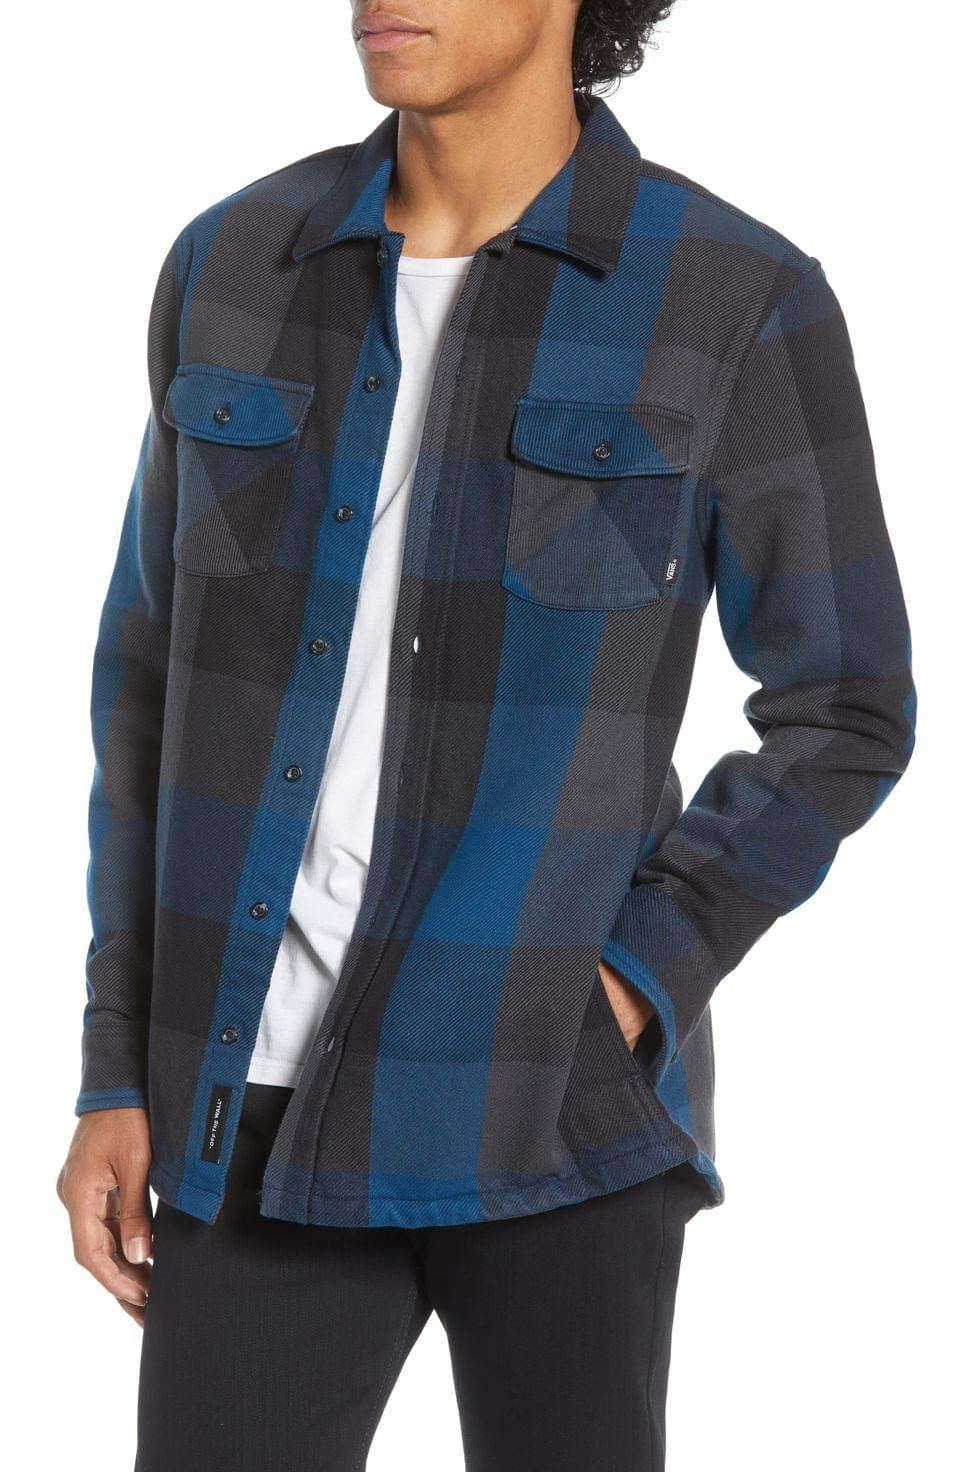 Men's Vans Hixon IV Buffalo Plaid Button-Up Twill Shirt Jacket